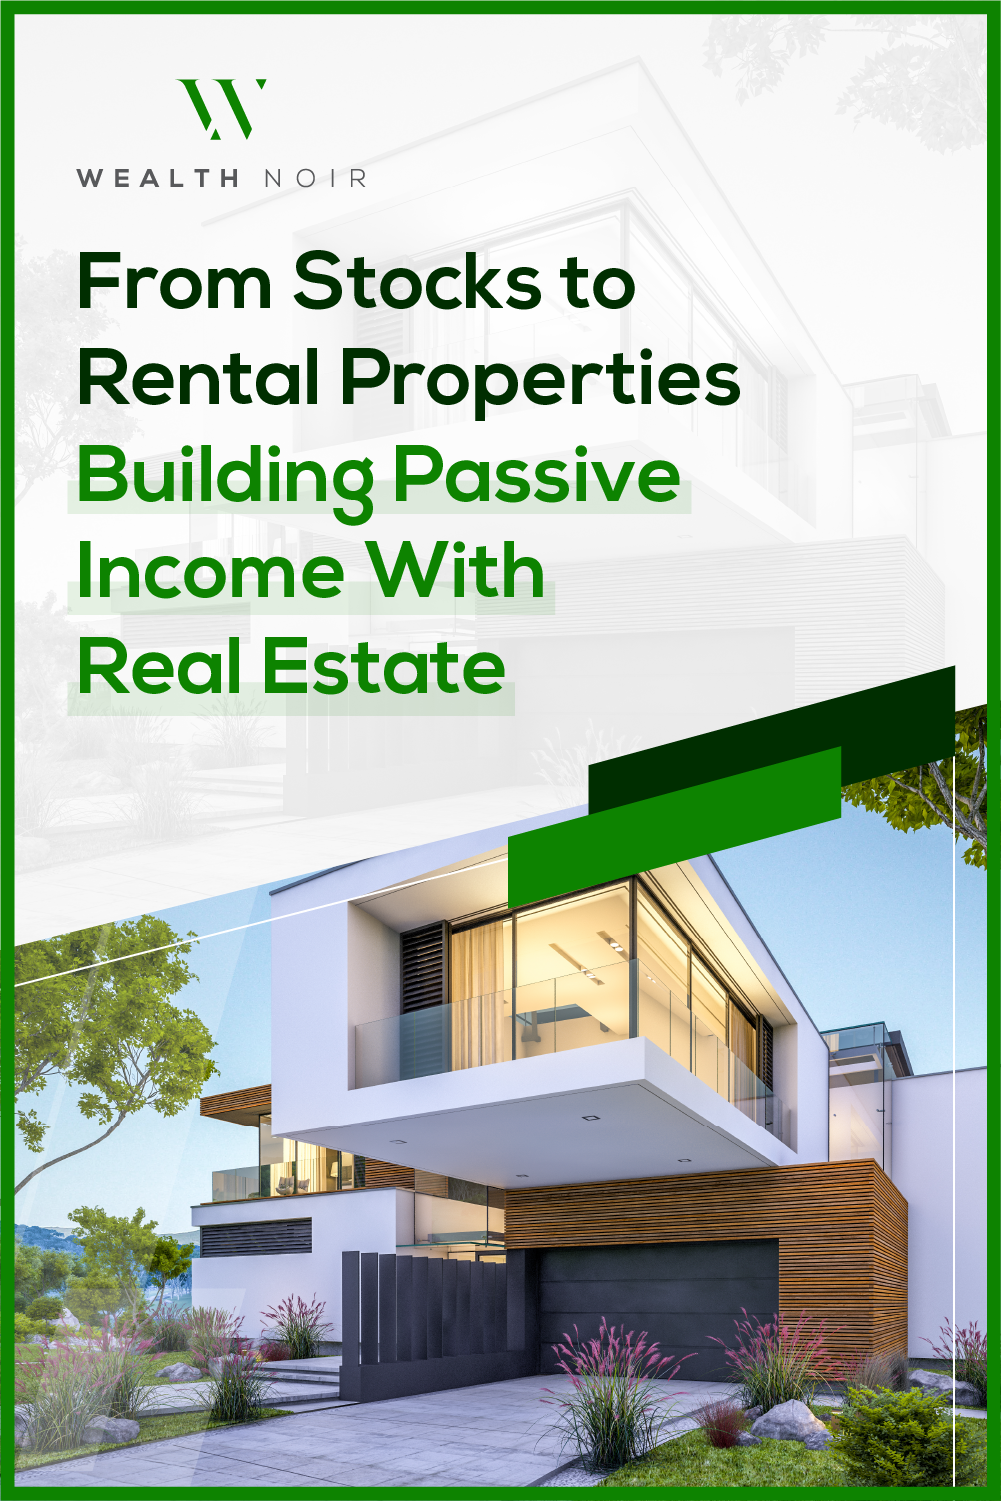 From Stocks to Rental Properties: Building Passive Income With Real Estate